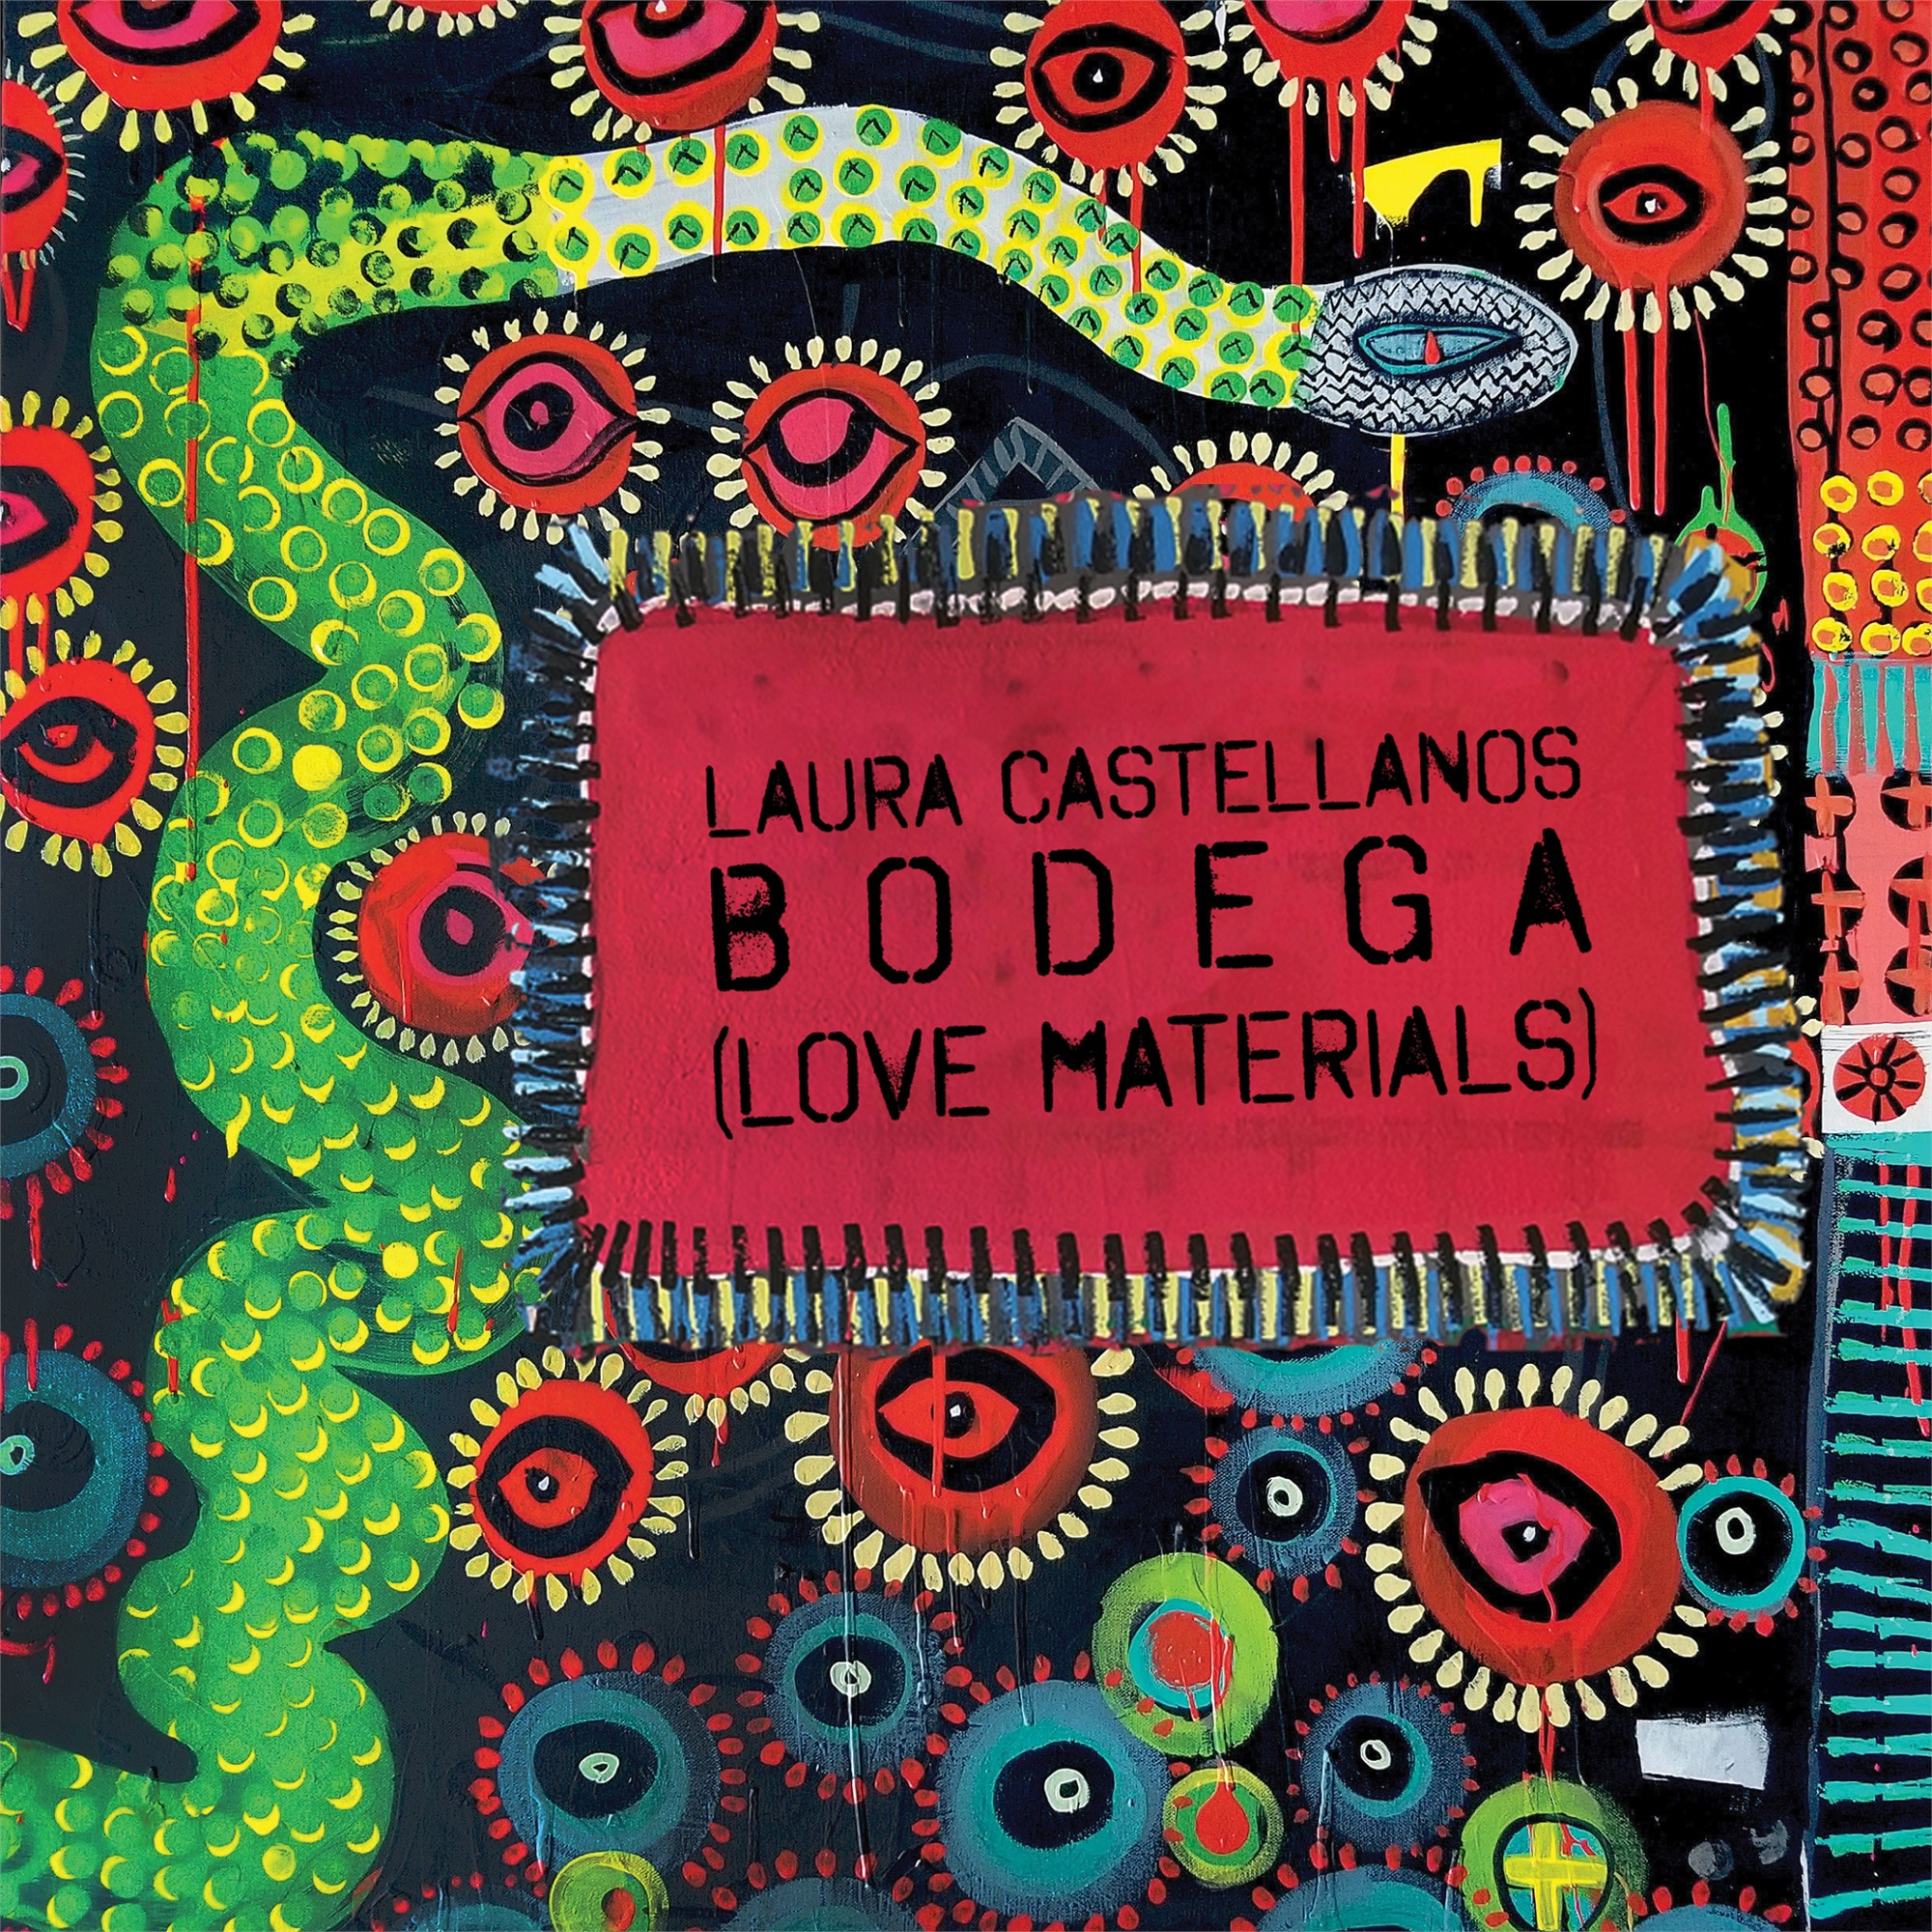 BODEGA (Love Materials) | exhibition catalog by Laura Castellanos